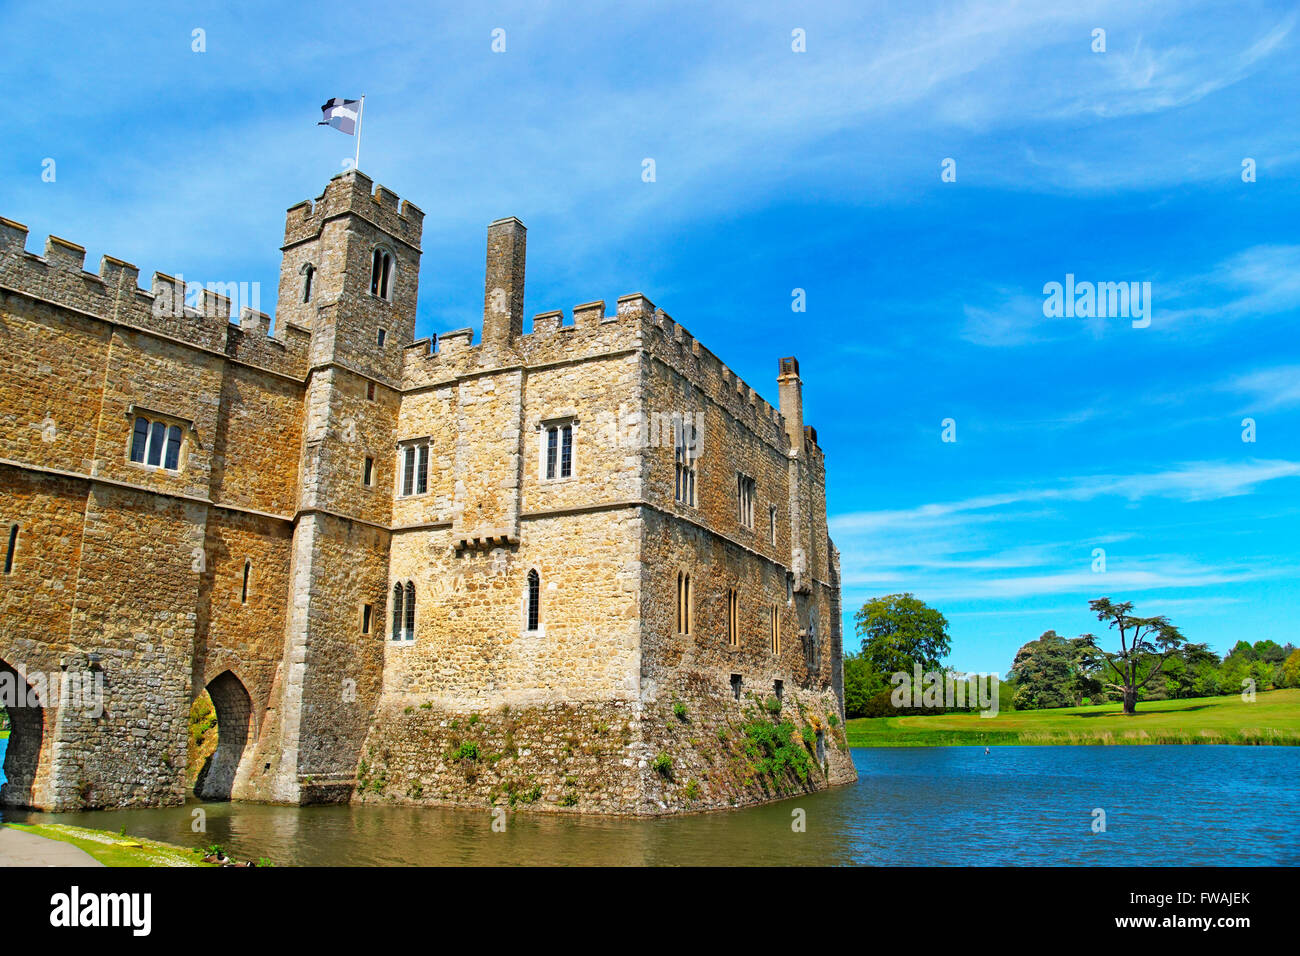 Leeds Castle in the island on the lake in Kent in England. The castle was built in the twelfth century as a king - Stock Image